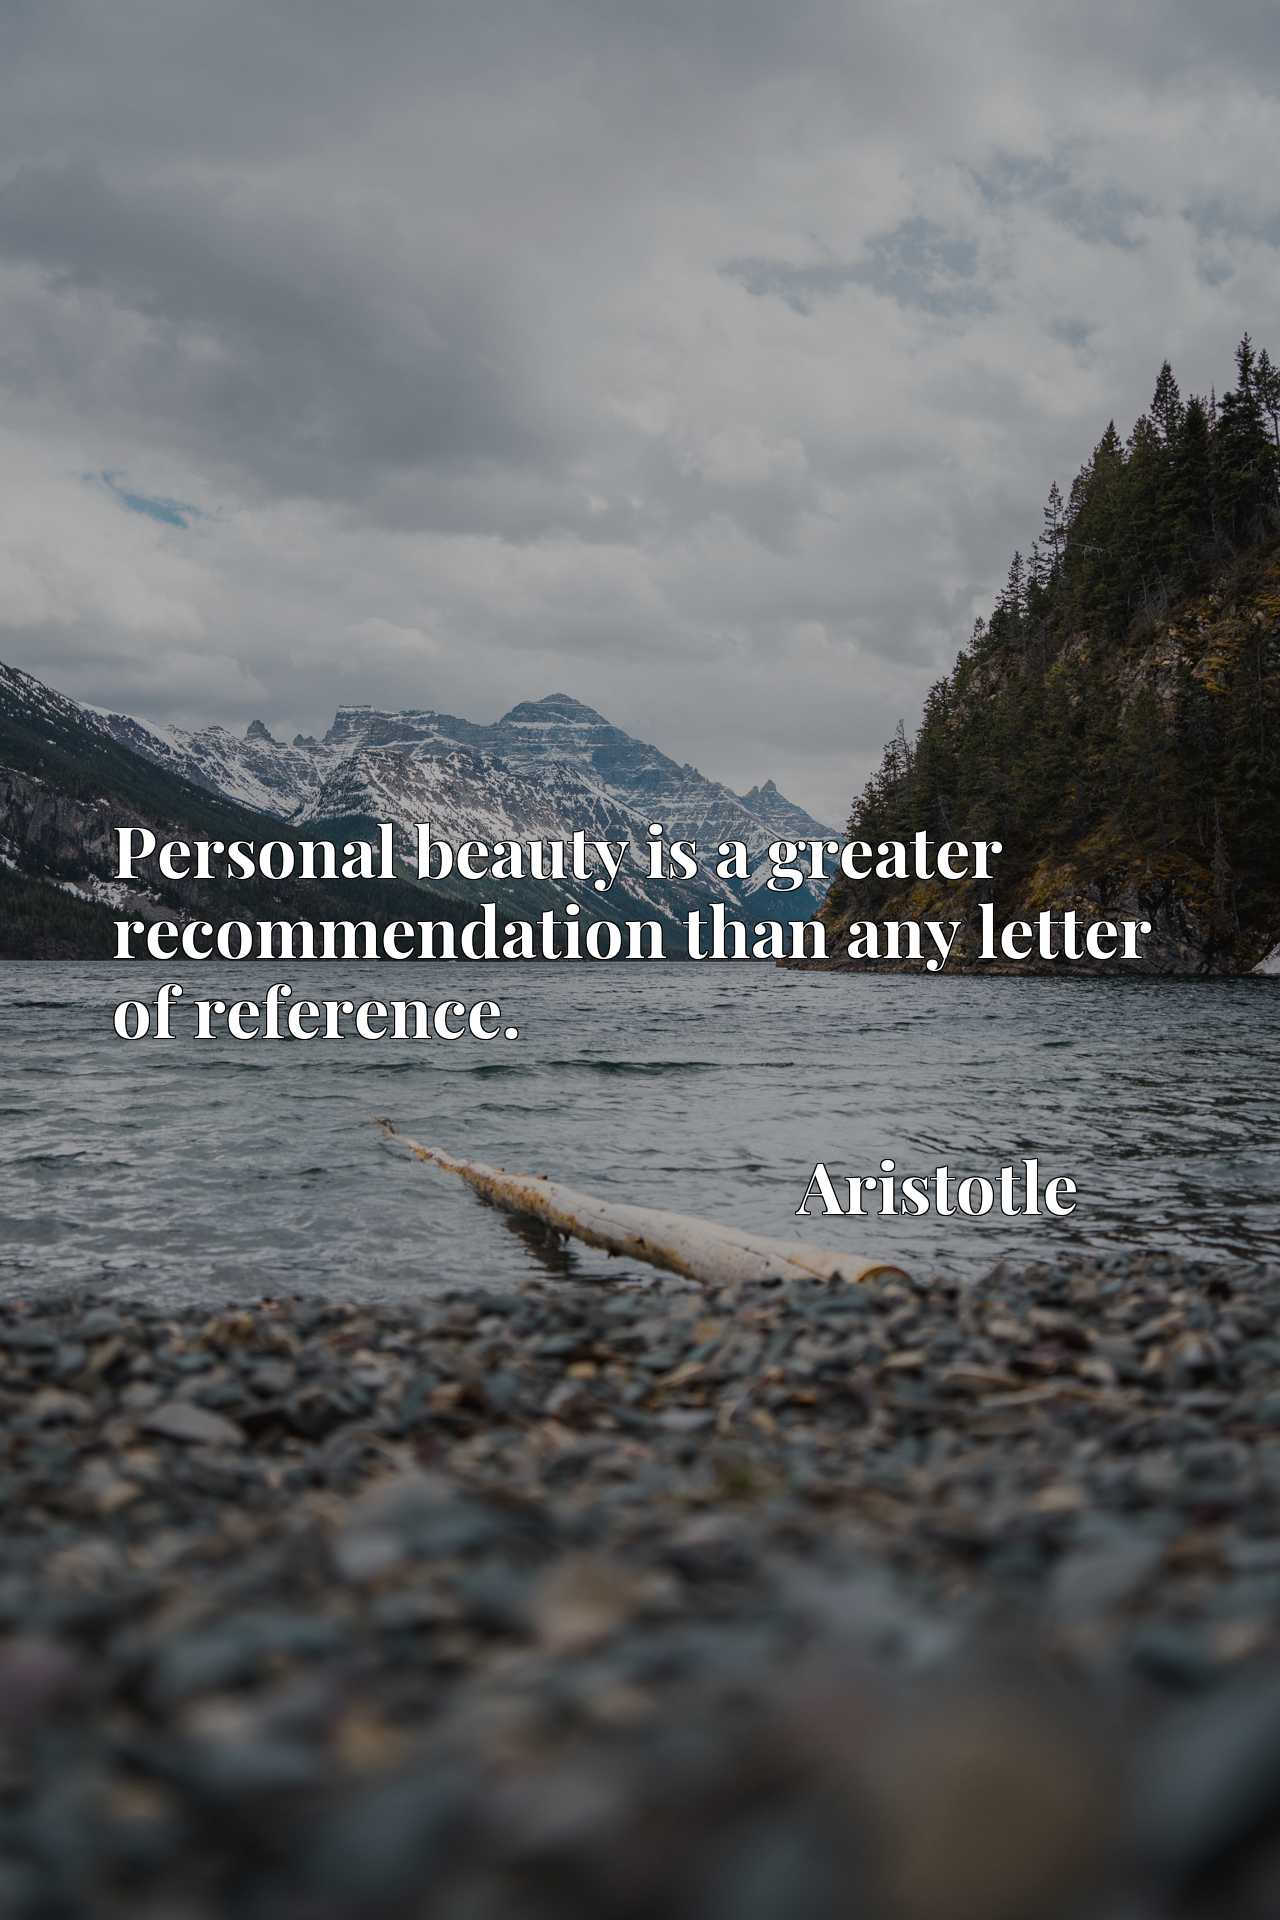 Personal beauty is a greater recommendation than any letter of reference.